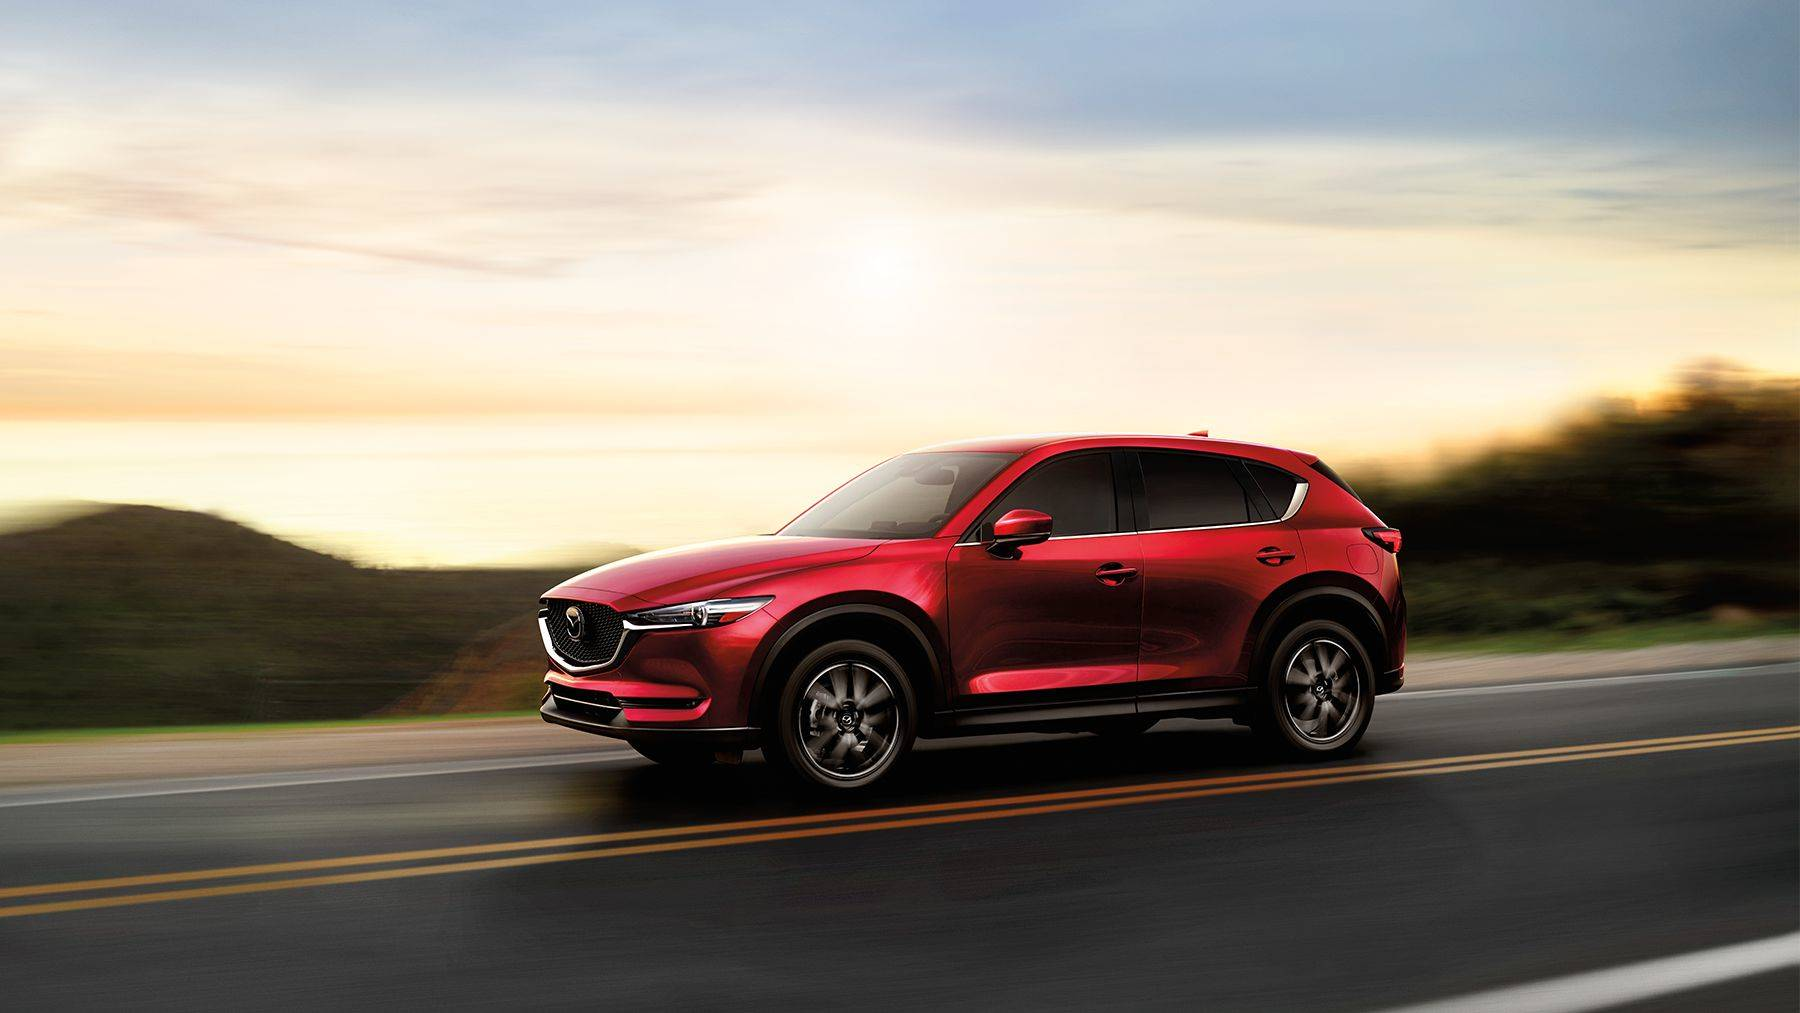 2018 Mazda CX-5 Leasing near Lodi, CA